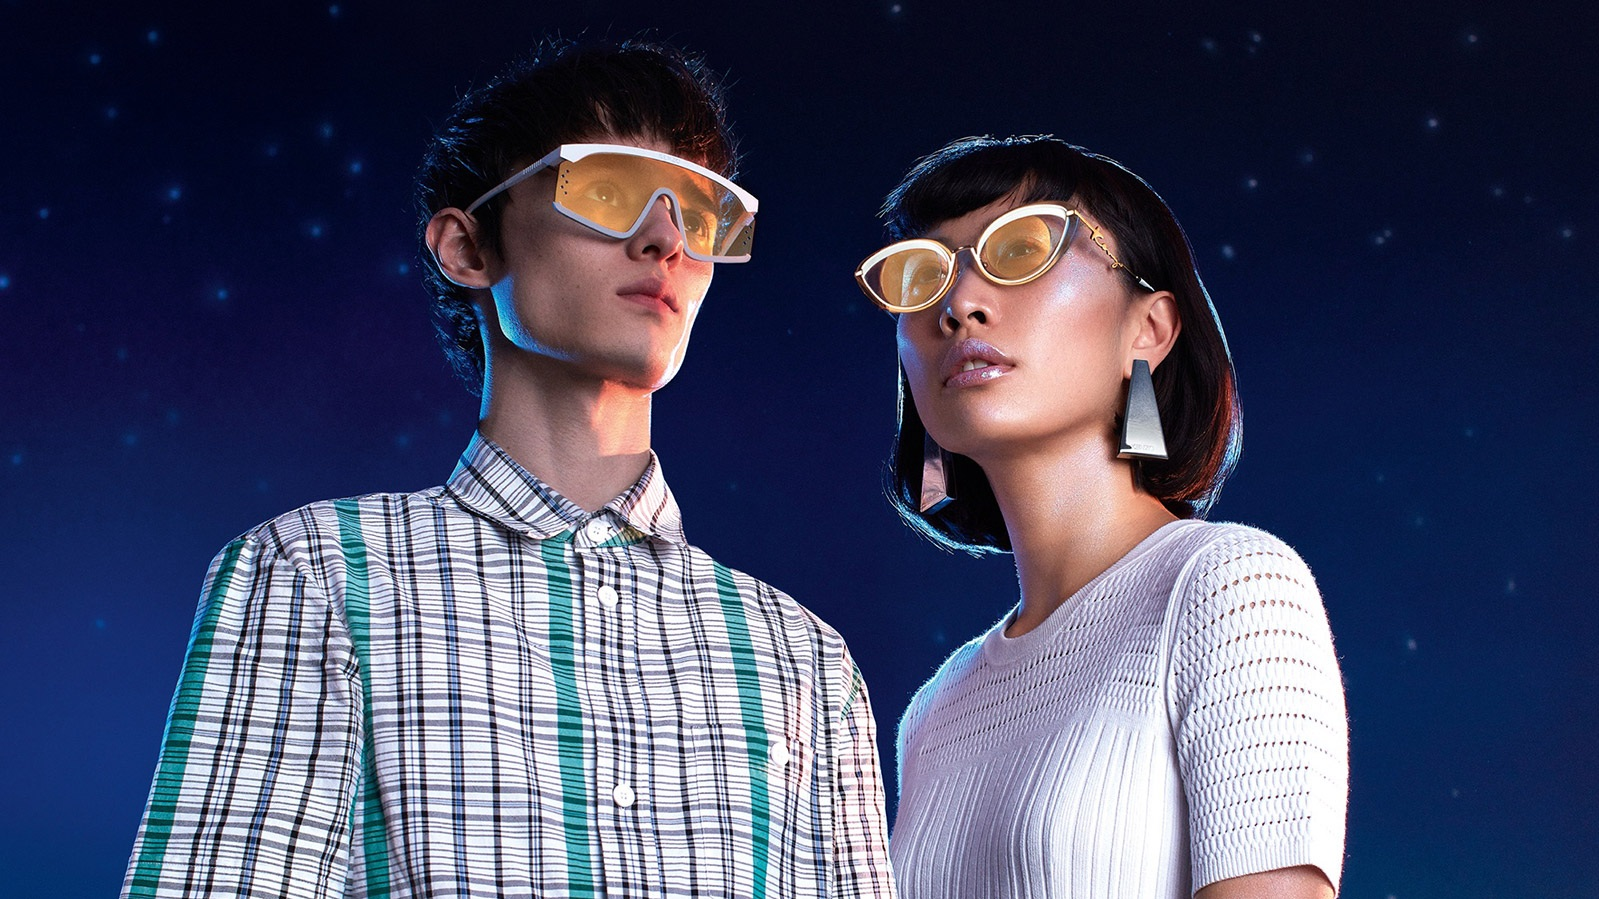 Kenzo - This fashion brand which started as a boutique in Paris has broadened into the optical world with its trendy shapes and colours giving the wearer that exclusive look.